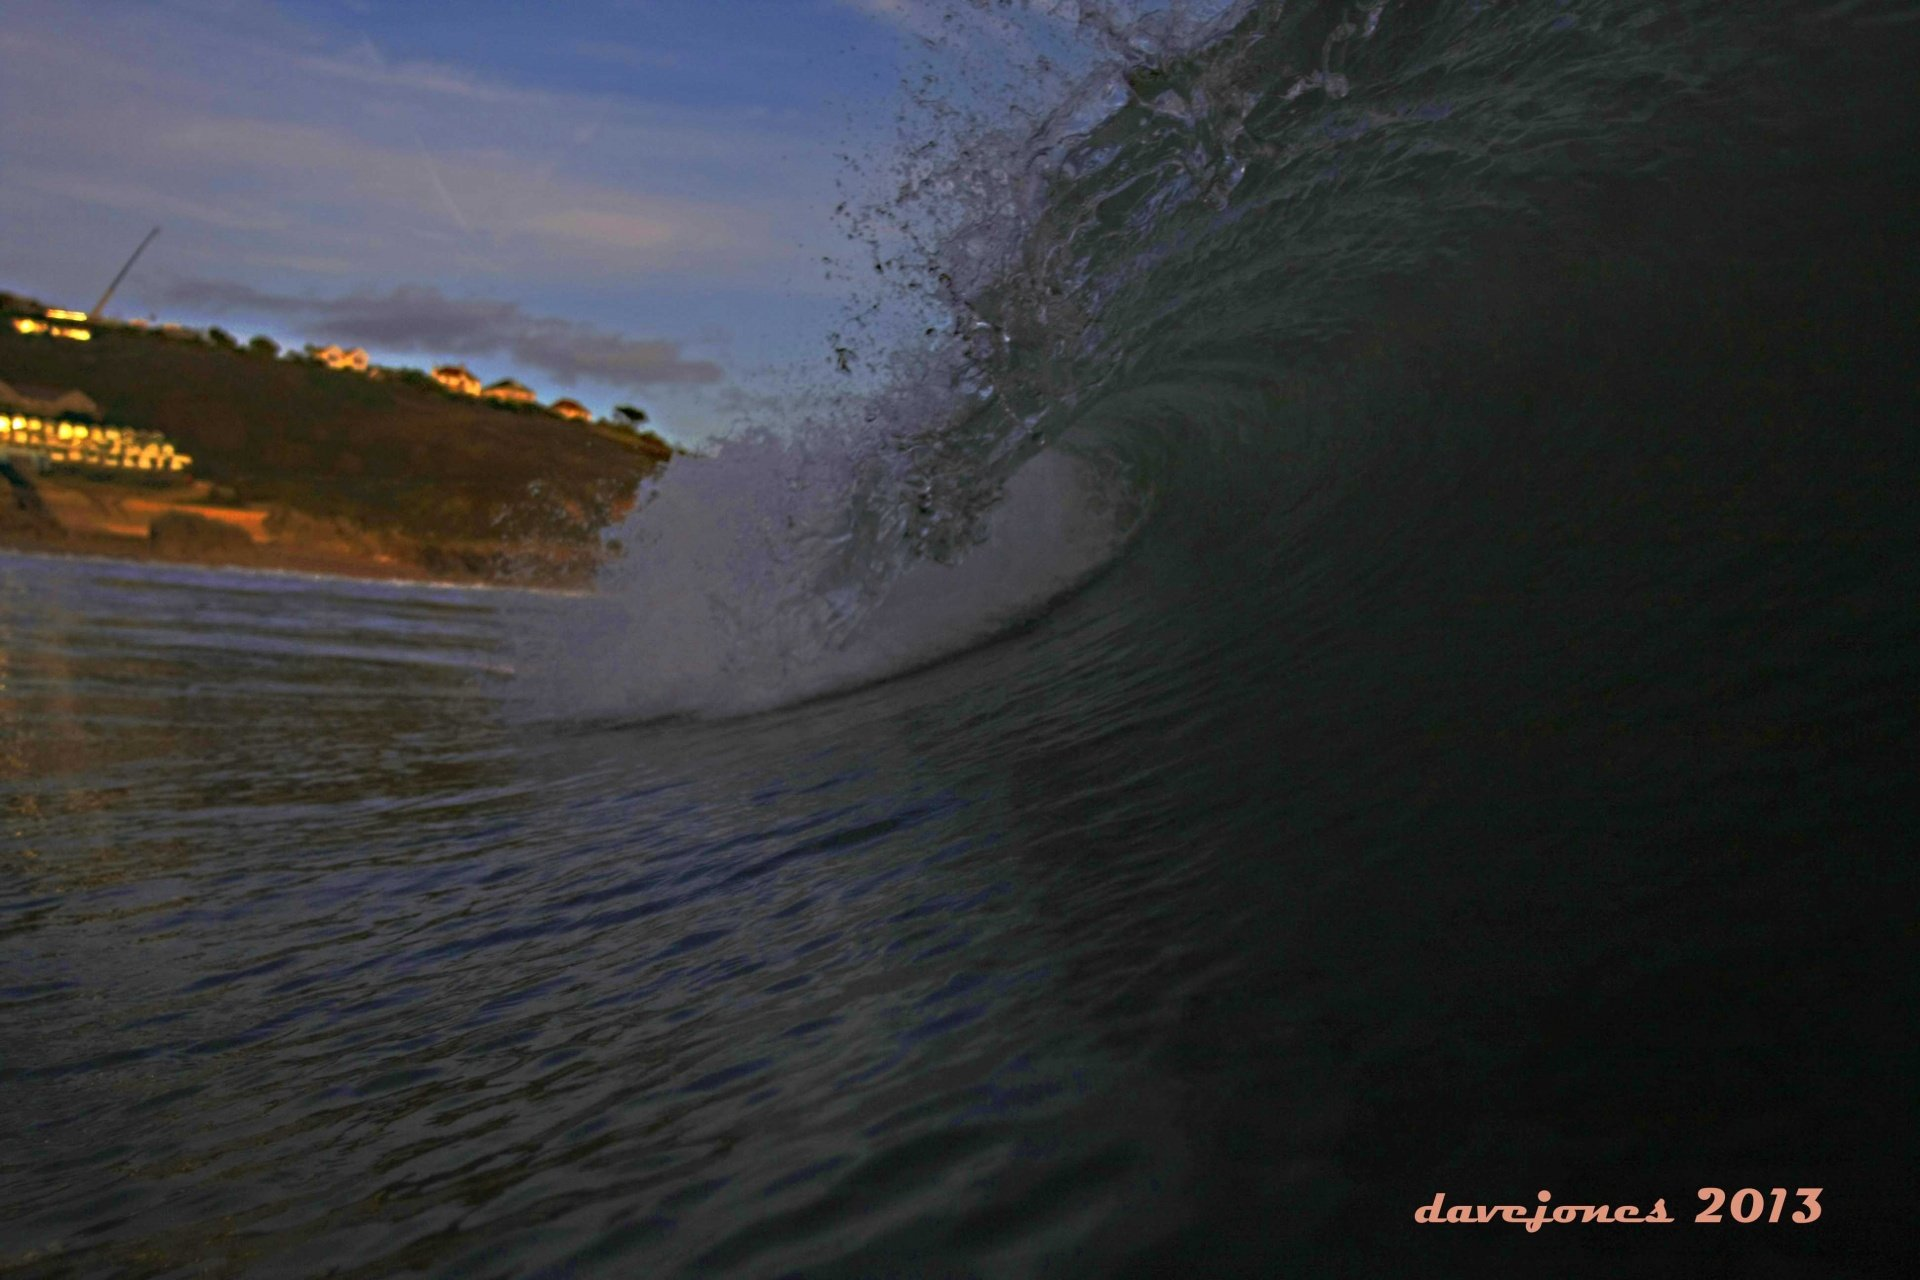 dave jones's photo of Langland Bay